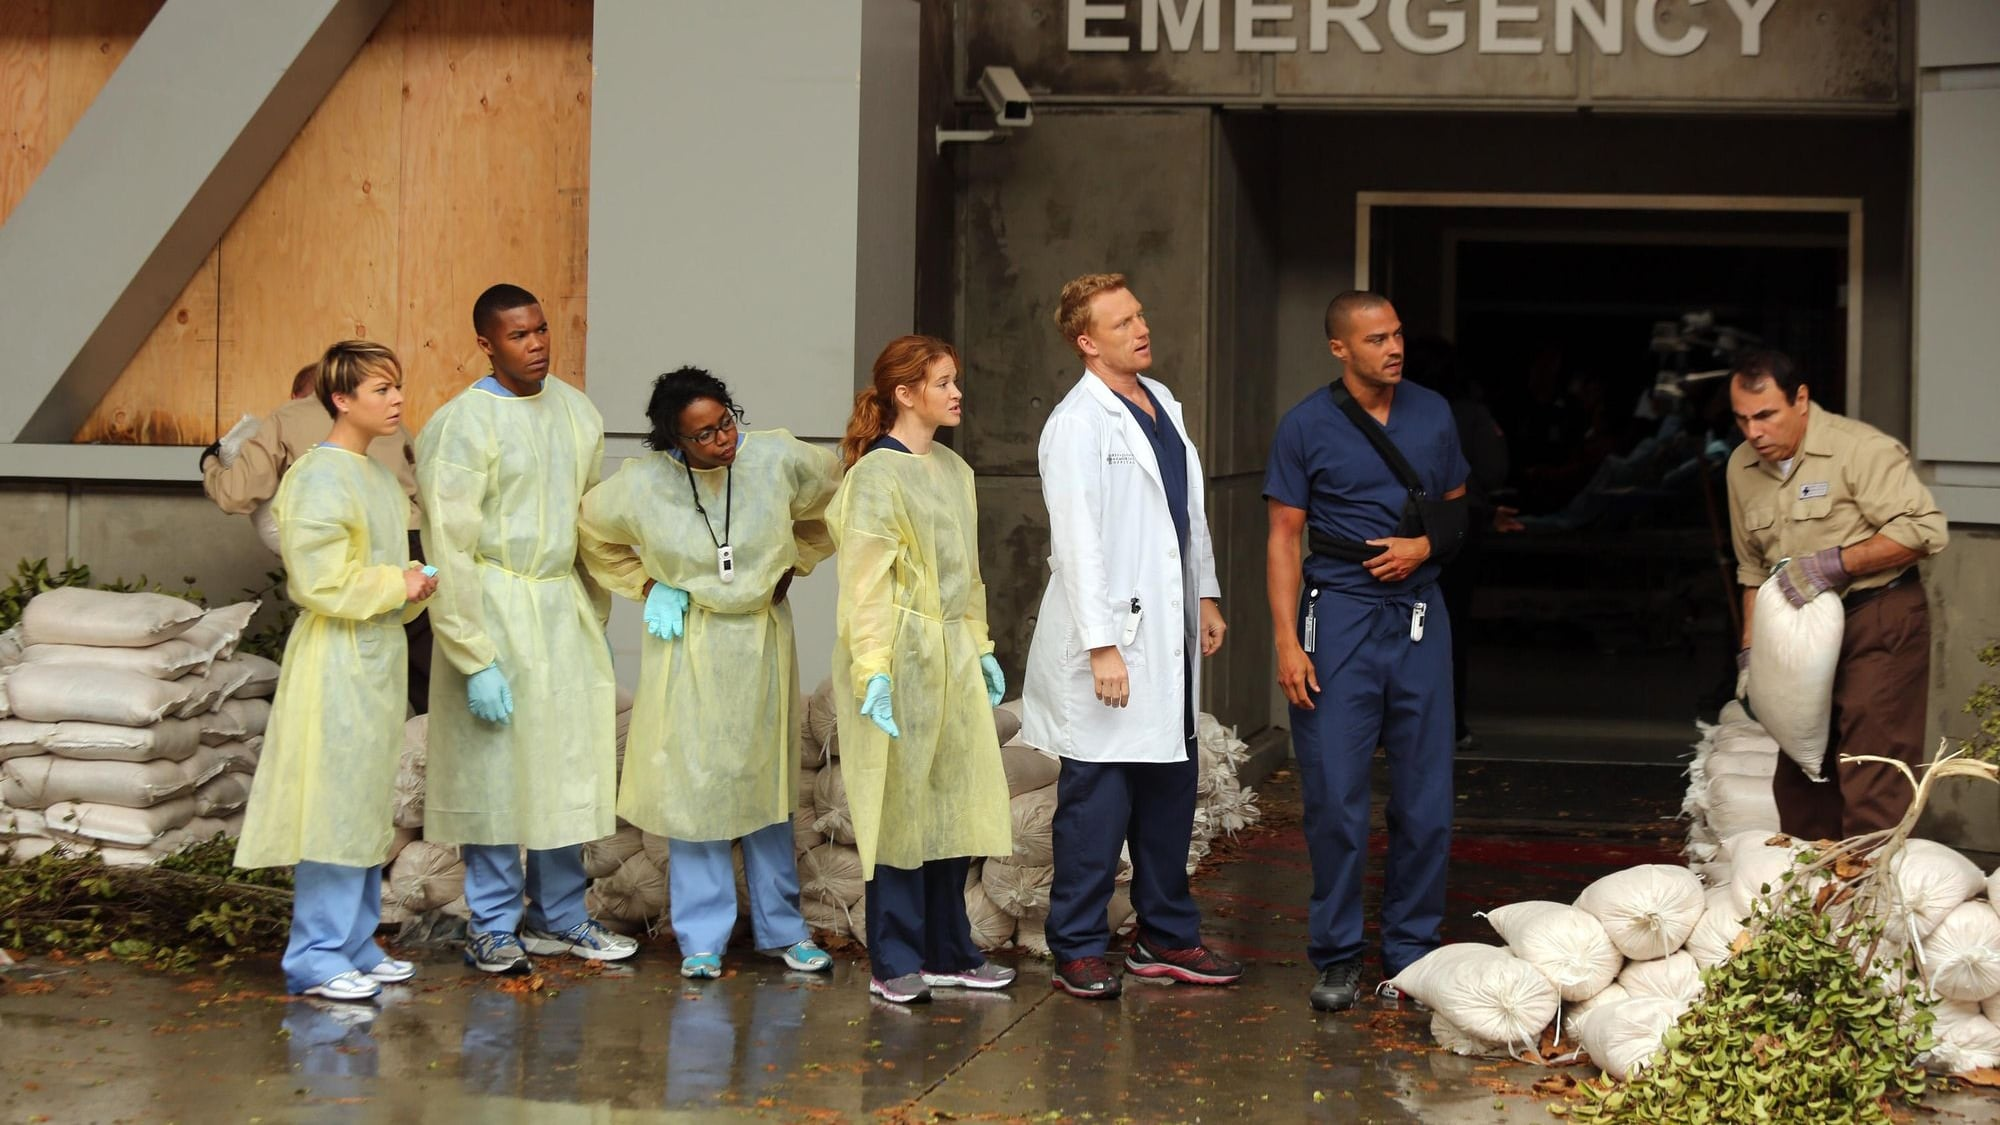 Grey\'s Anatomy: Season 10 Episode 1 S10E01 Openload Watch Free ...